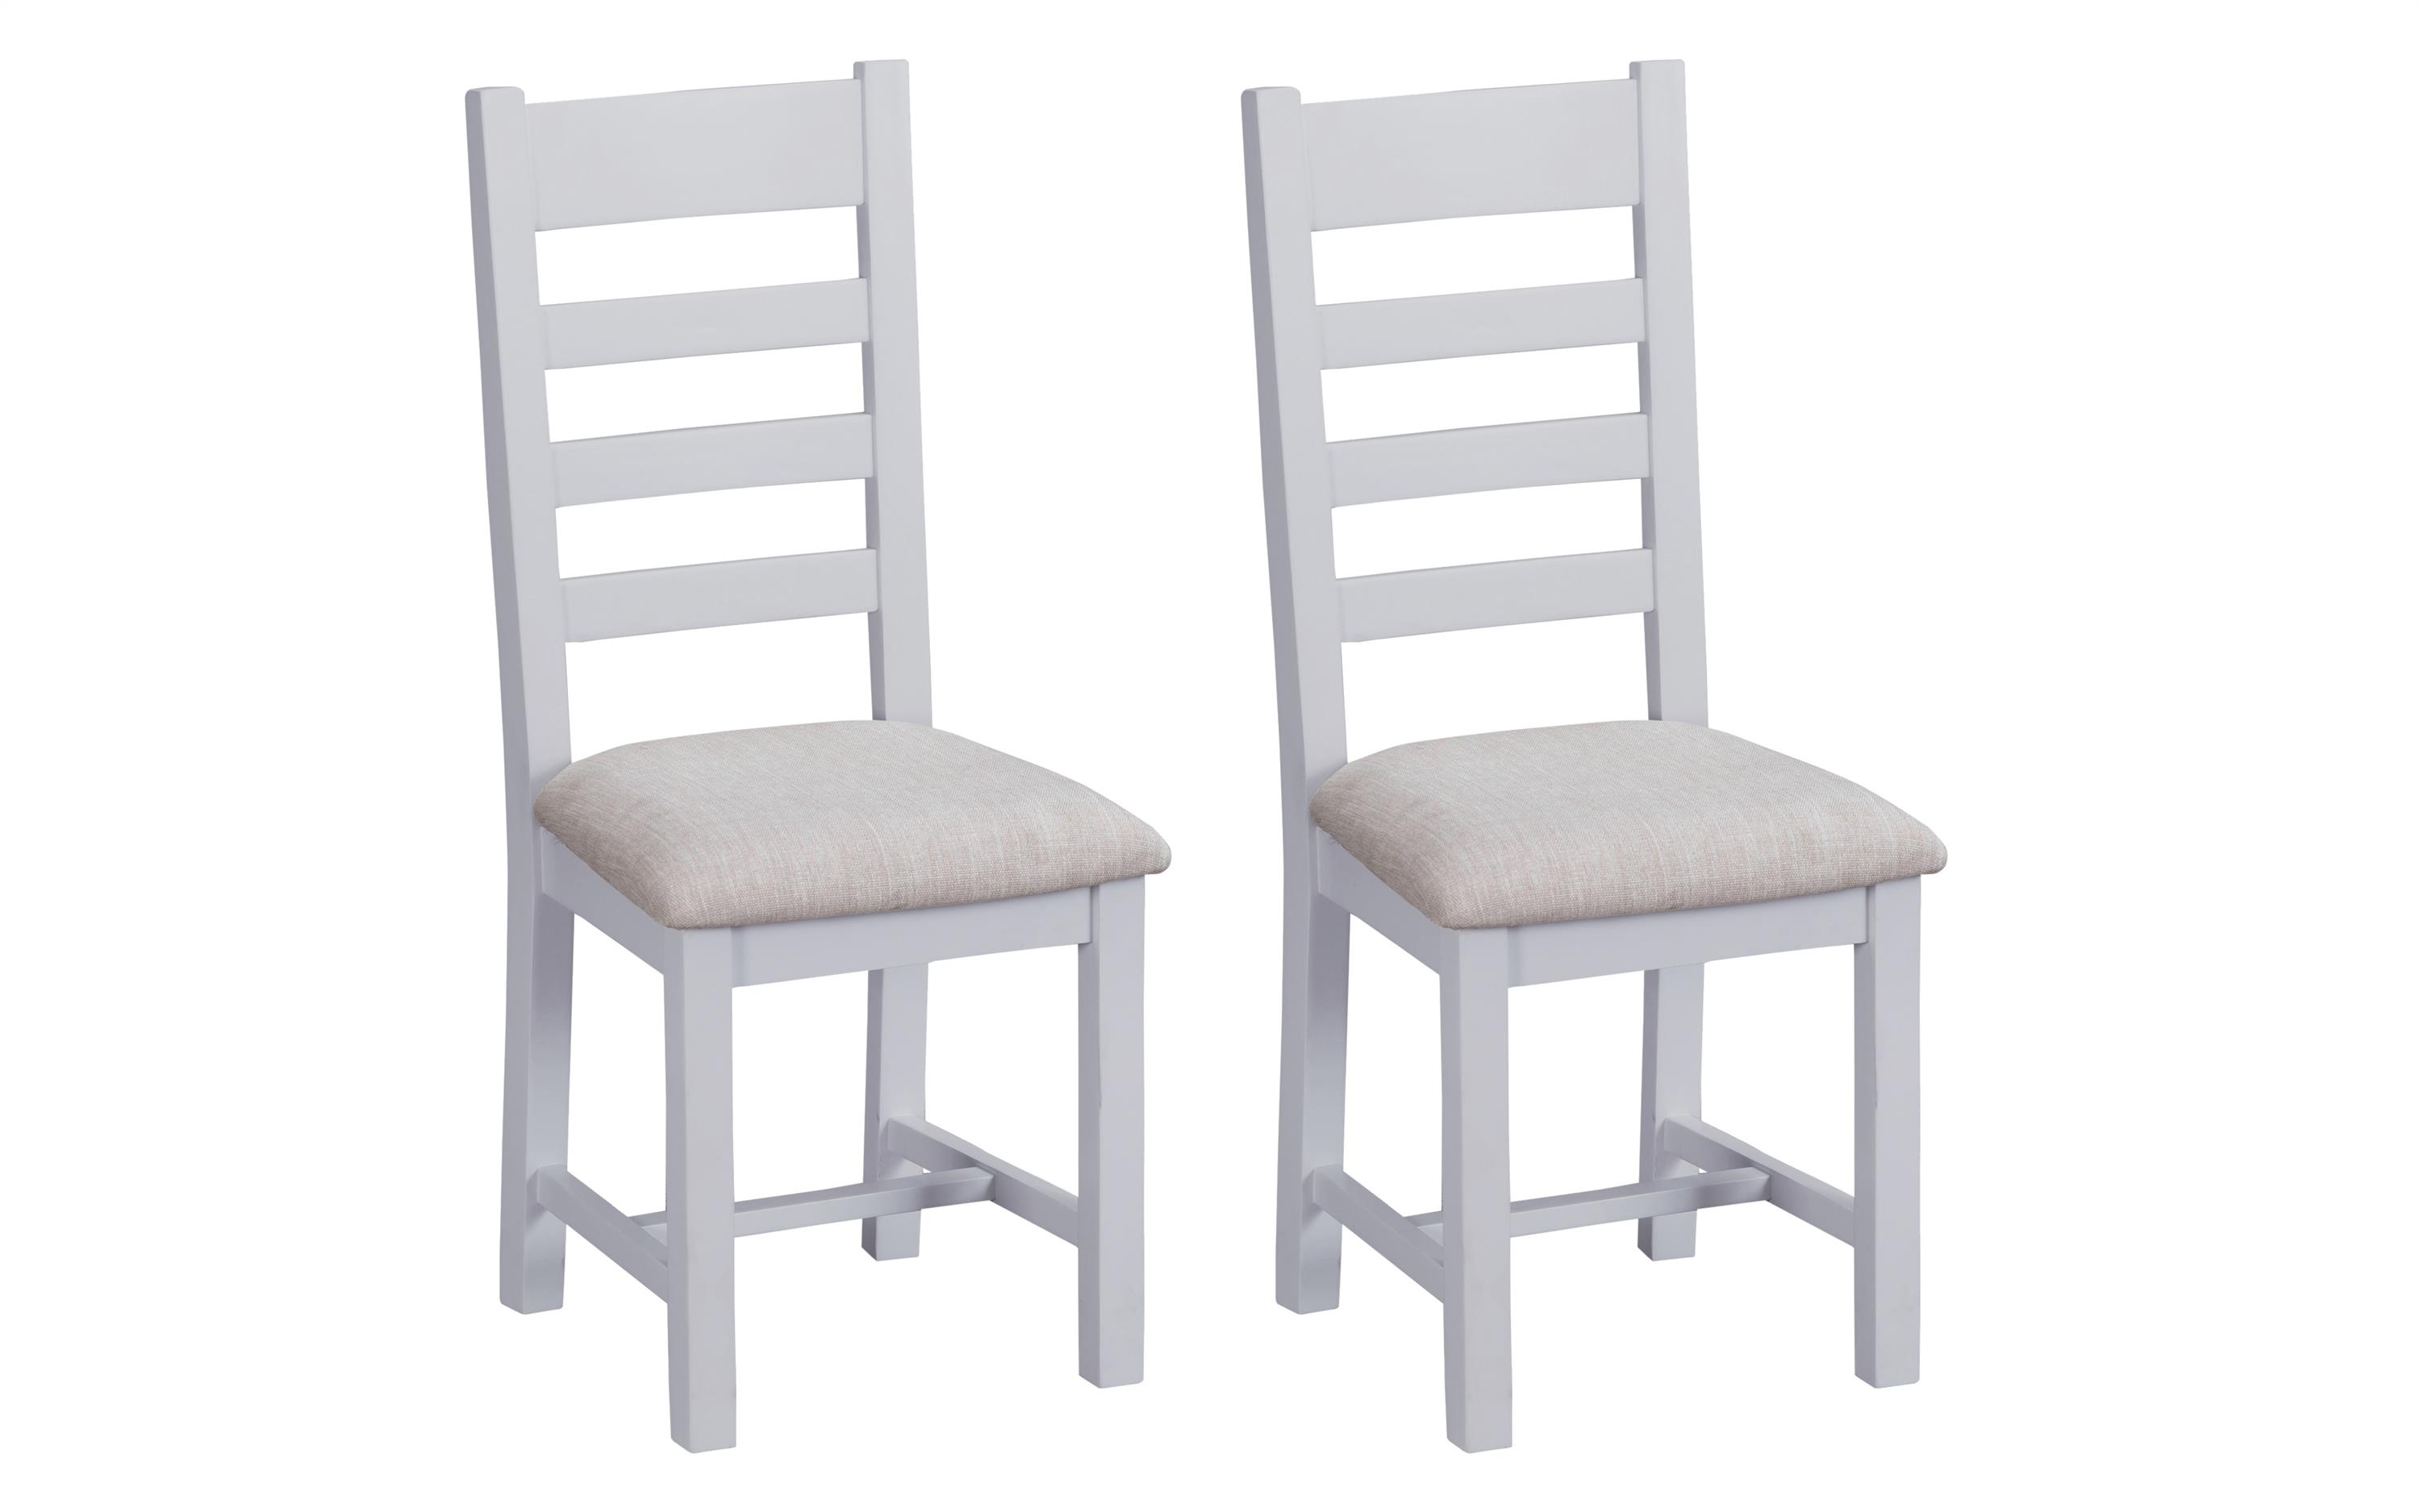 Victoria Pair of Ladder Back Dining Chairs - Fabric Seat, , large